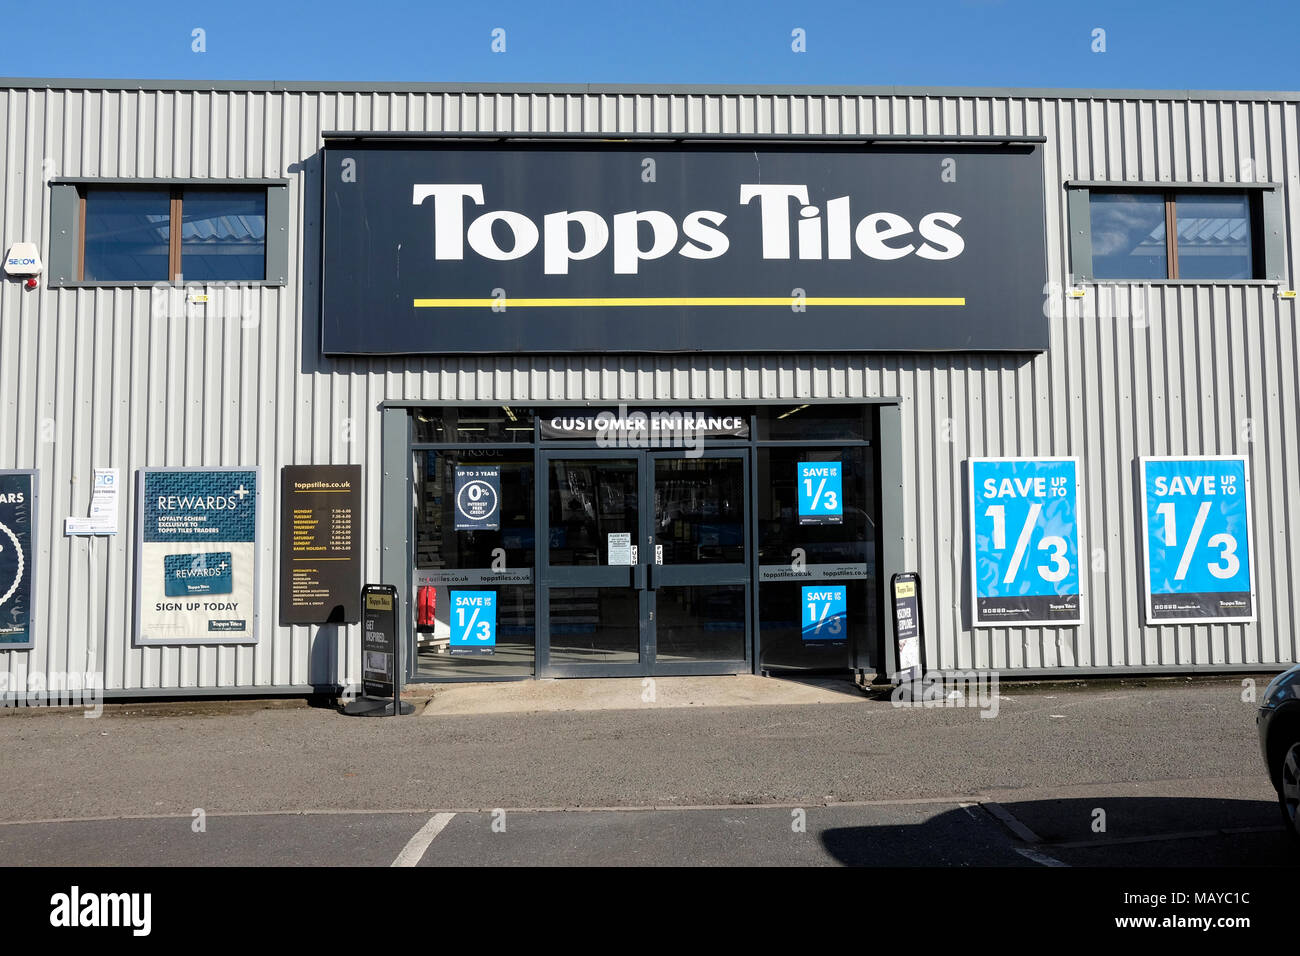 A general view of Topps tiles shop in Willesden - Stock Image